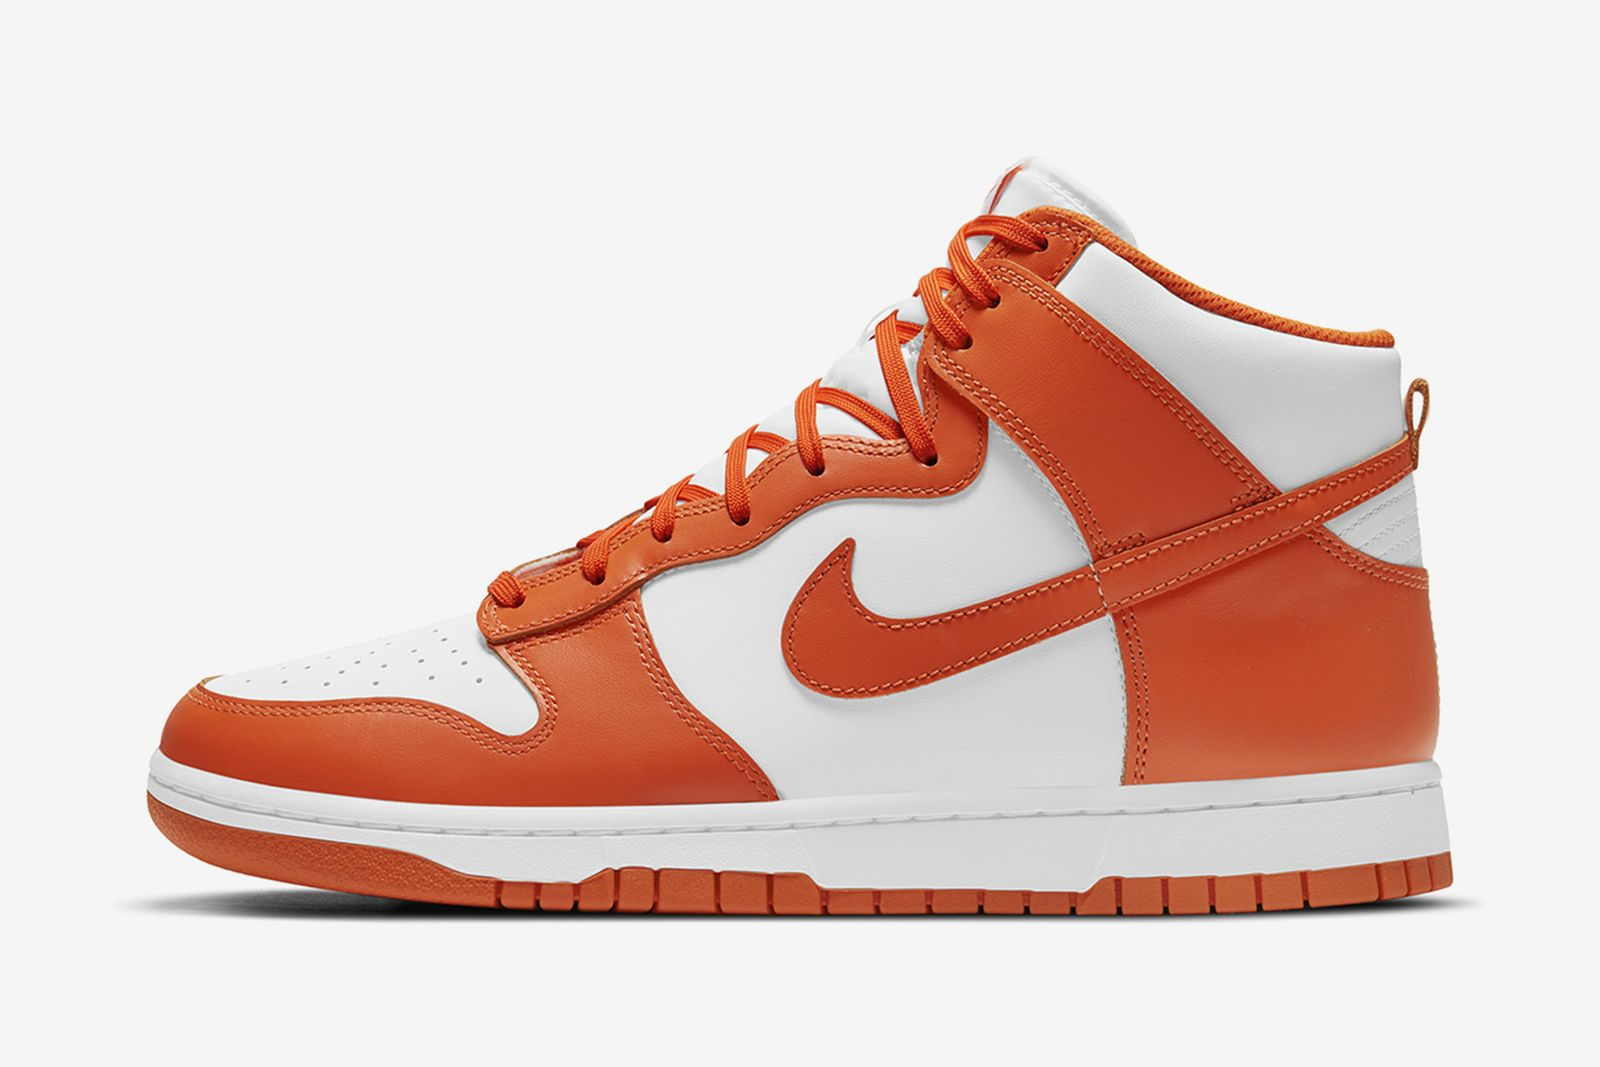 nike-dunk-spring-2021-release-date-price-1-21